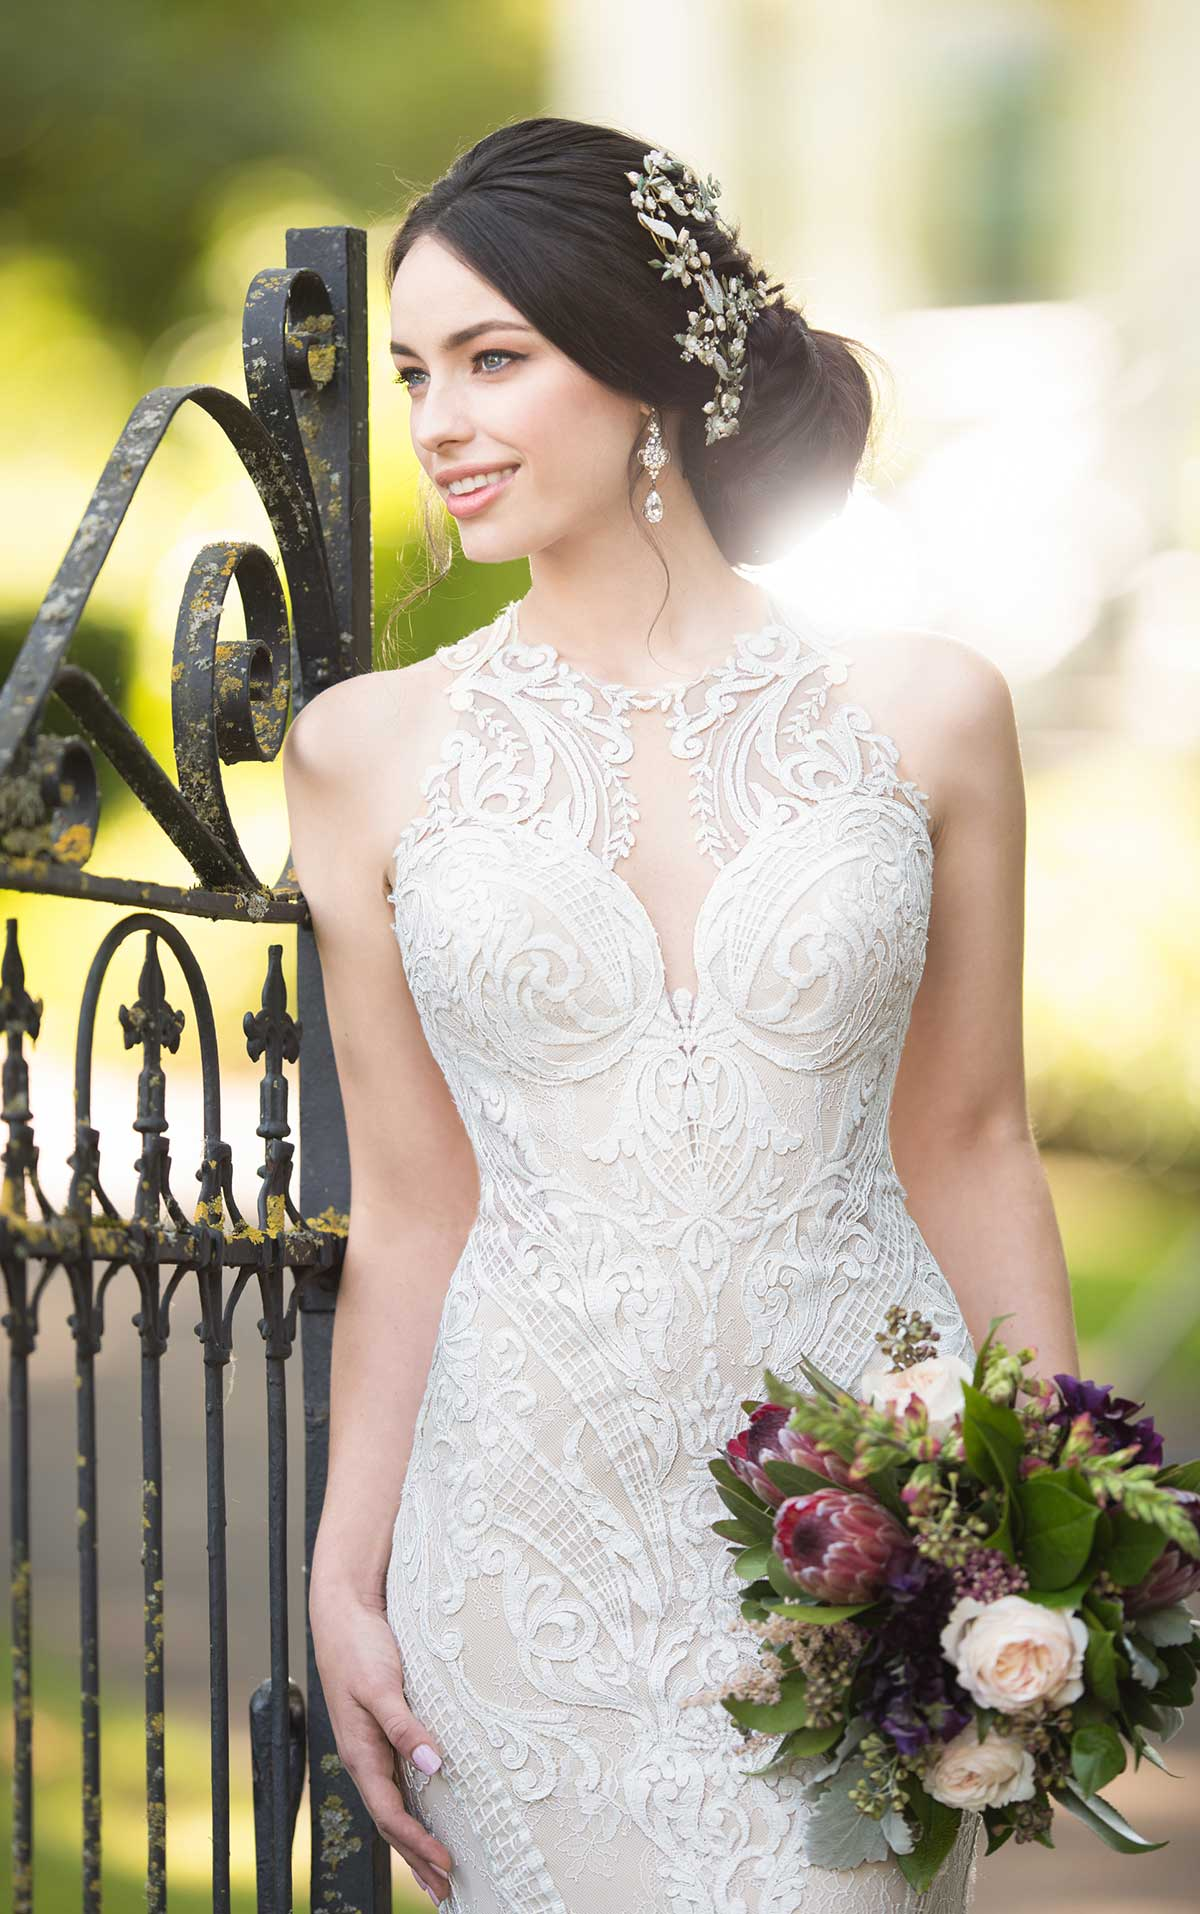 Off the rack Wedding Dress Sample Sale Clearance